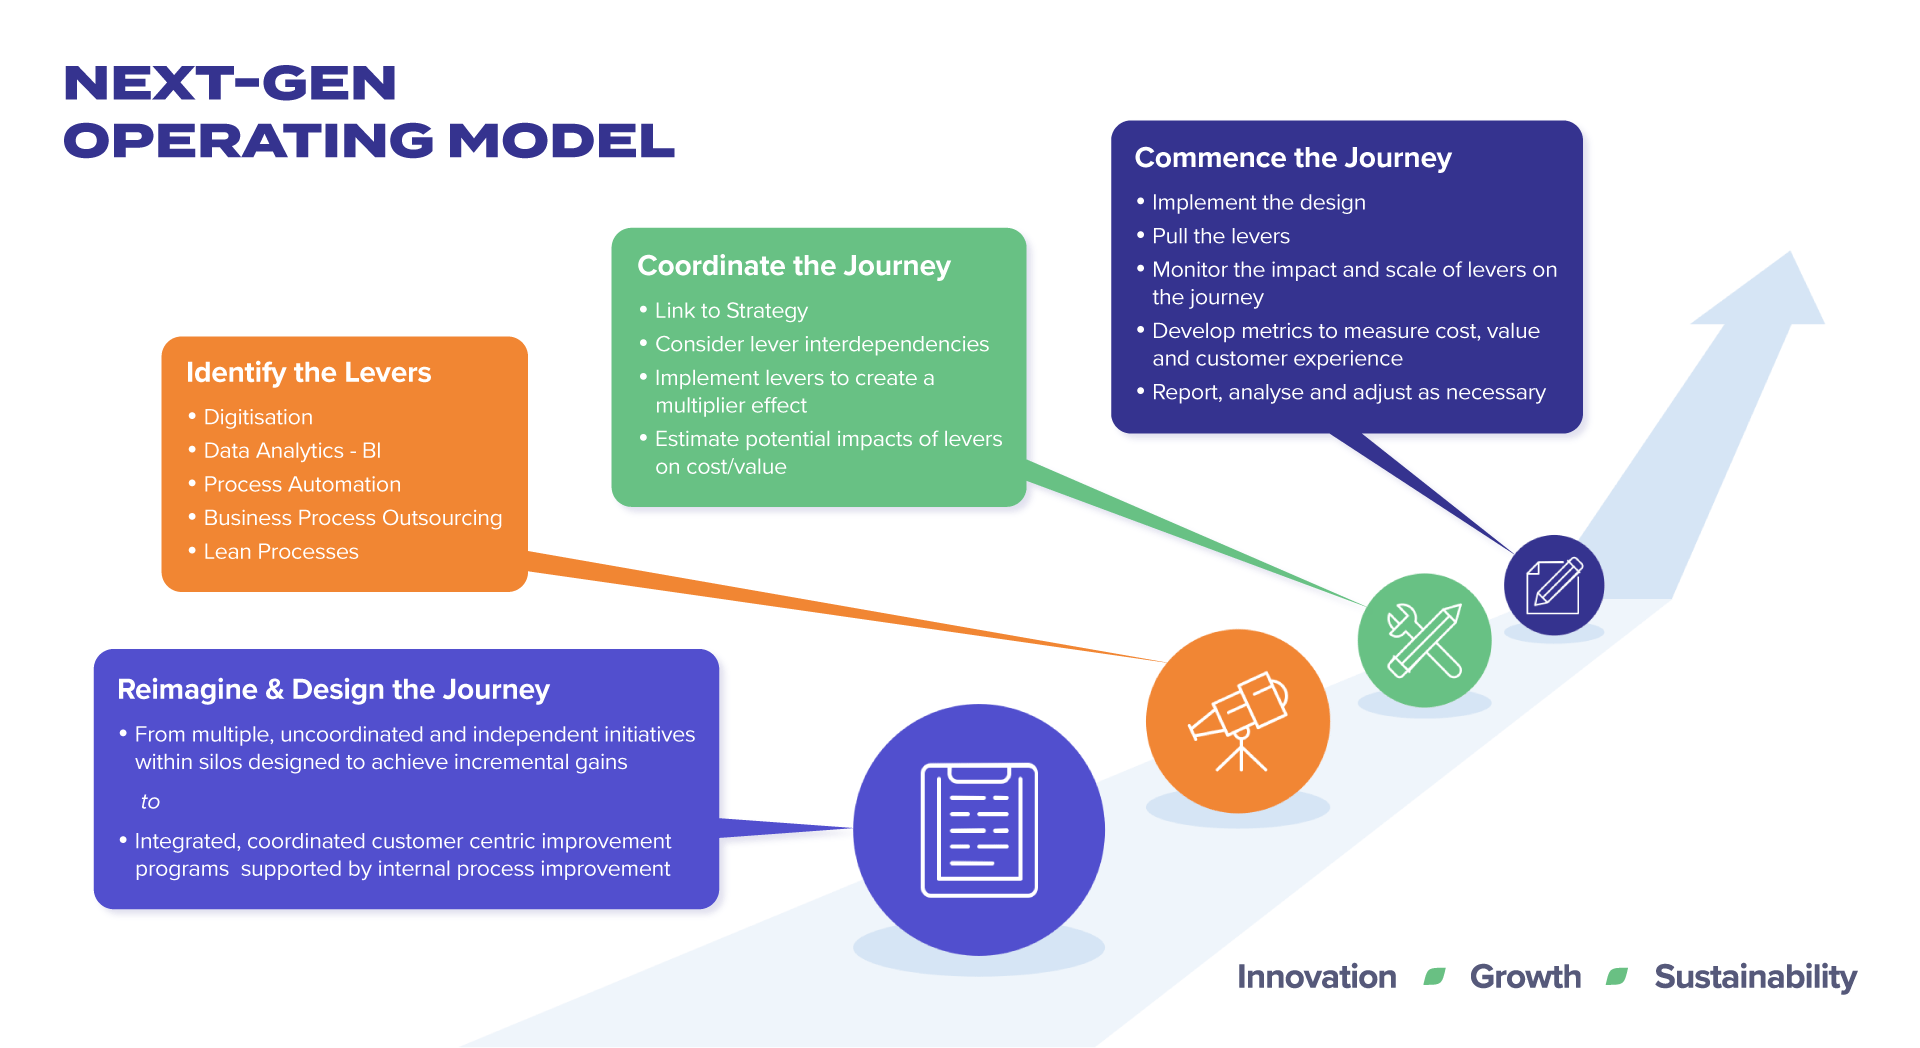 Next-Gen Operating Model Diagram